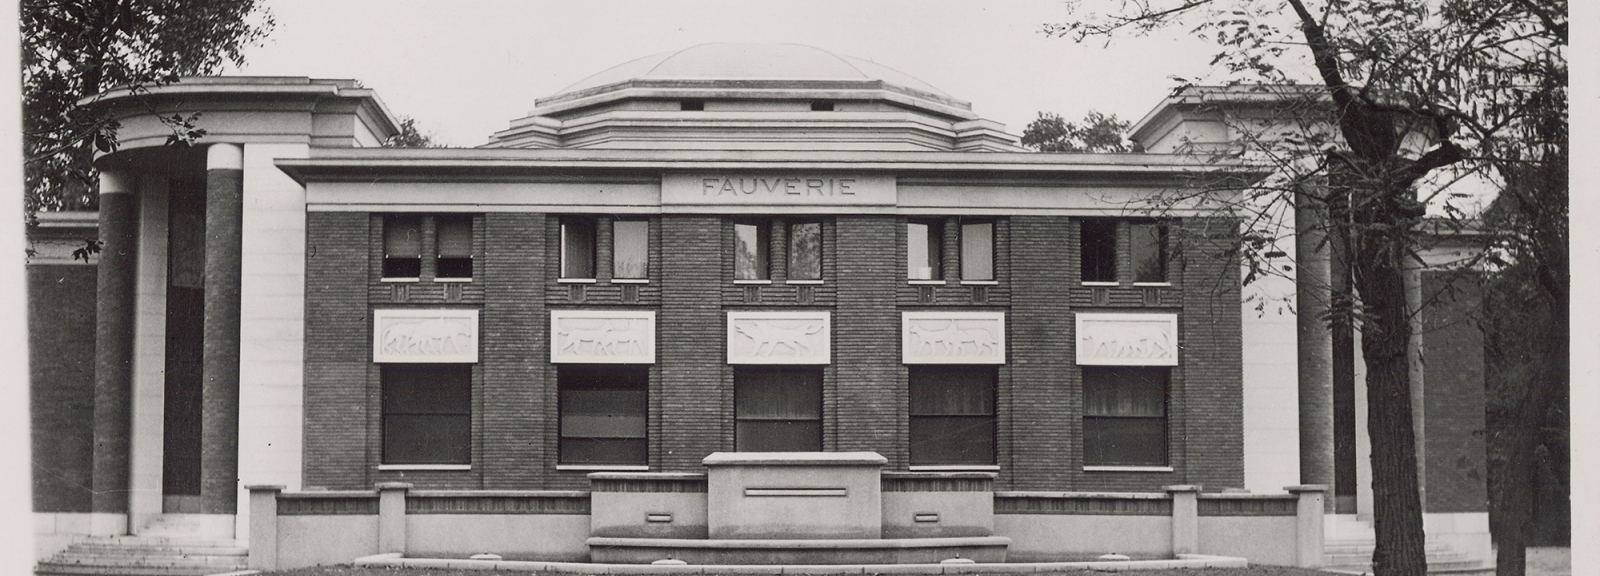 Façade of the Big Cat House, 1937 © MNHN - Bibliothèque centrale